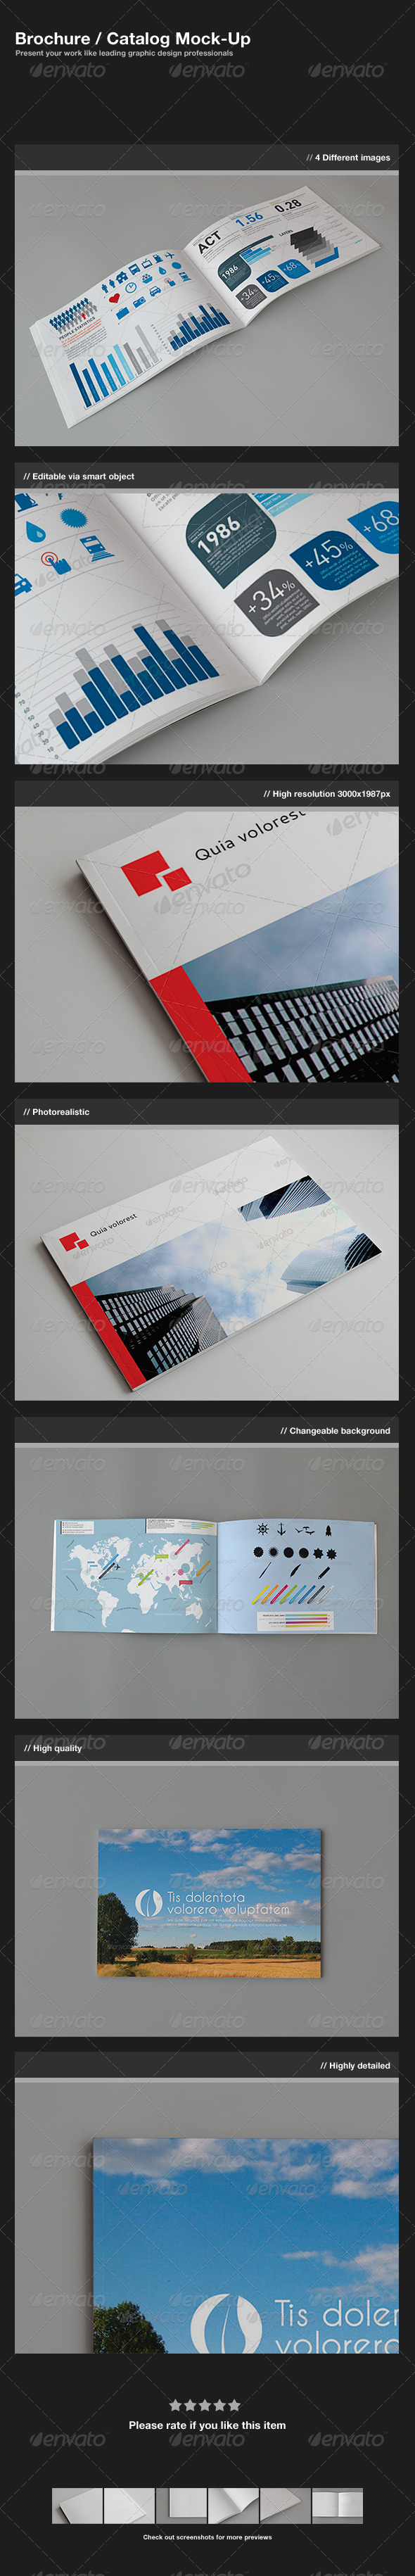 GraphicRiver Brochure Catalog Mock-Up 1583241